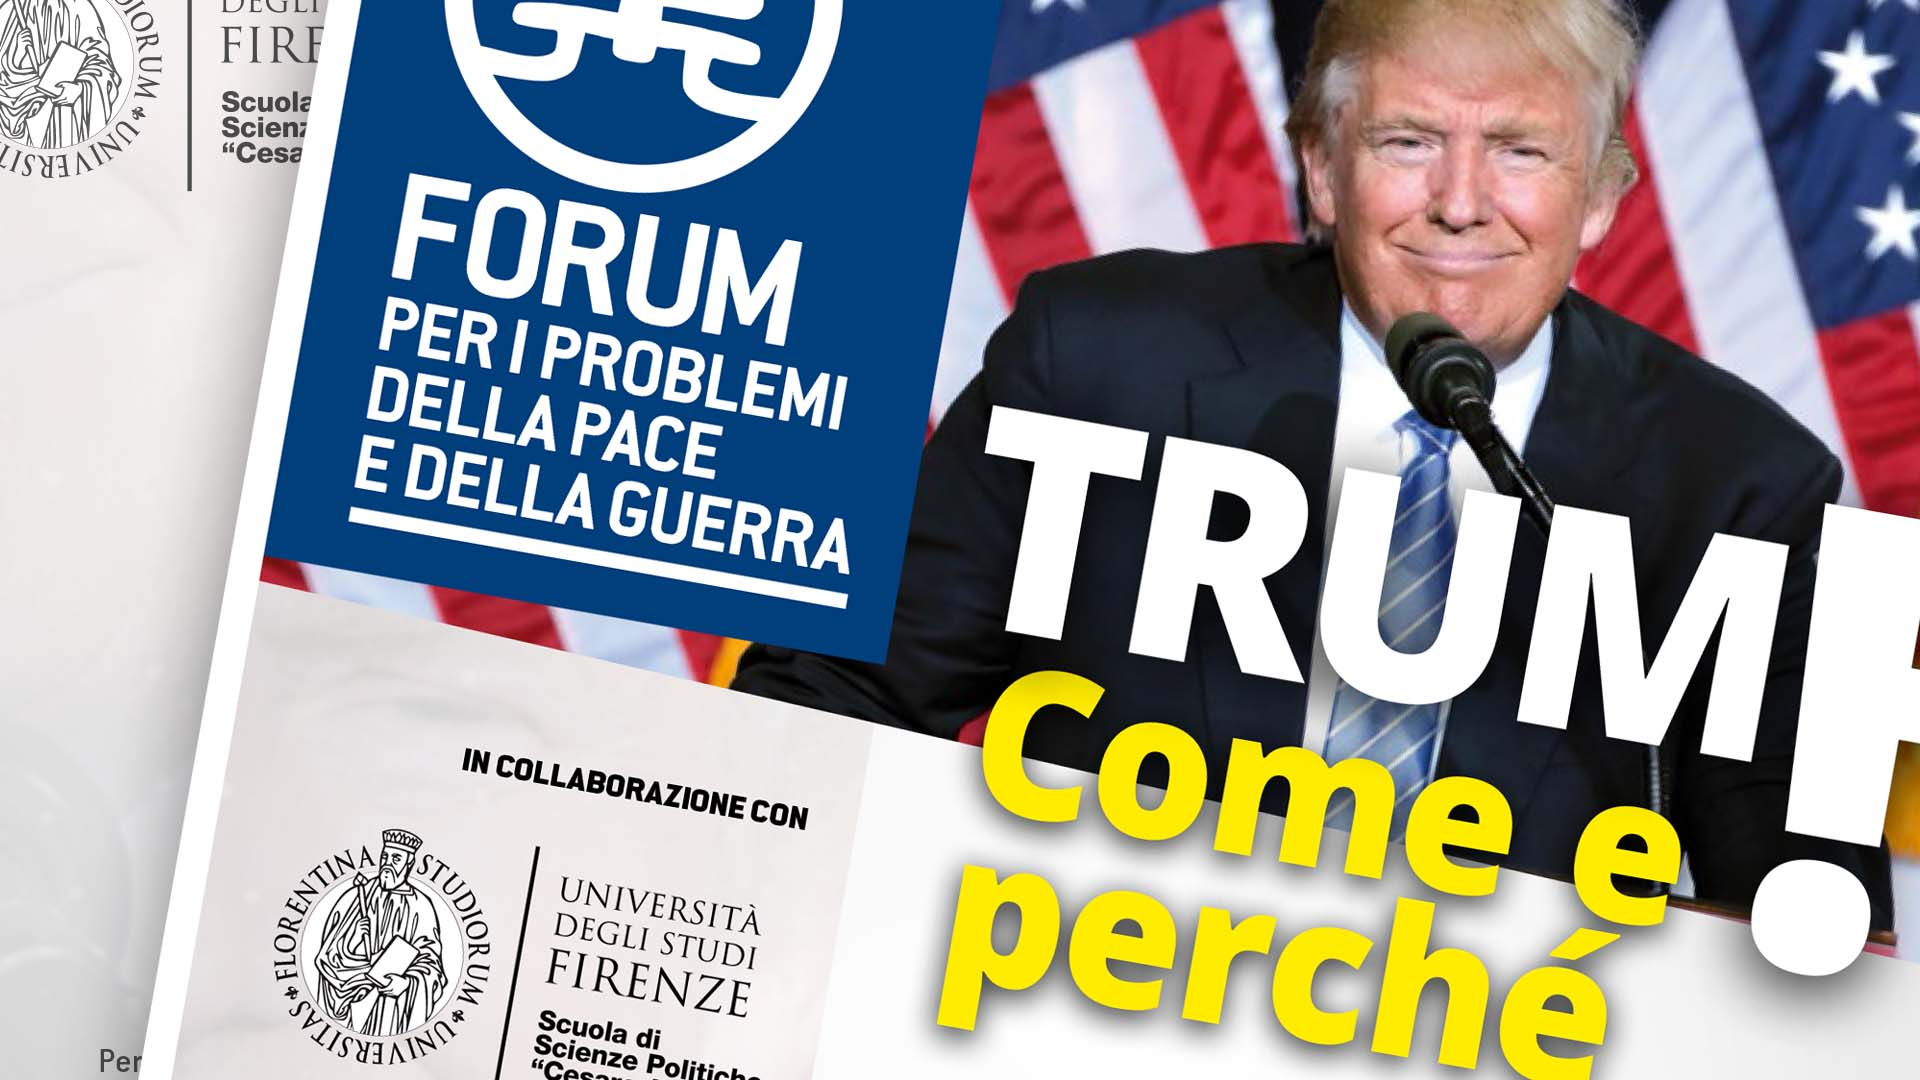 Forum. Trump! Come e perché, apertura